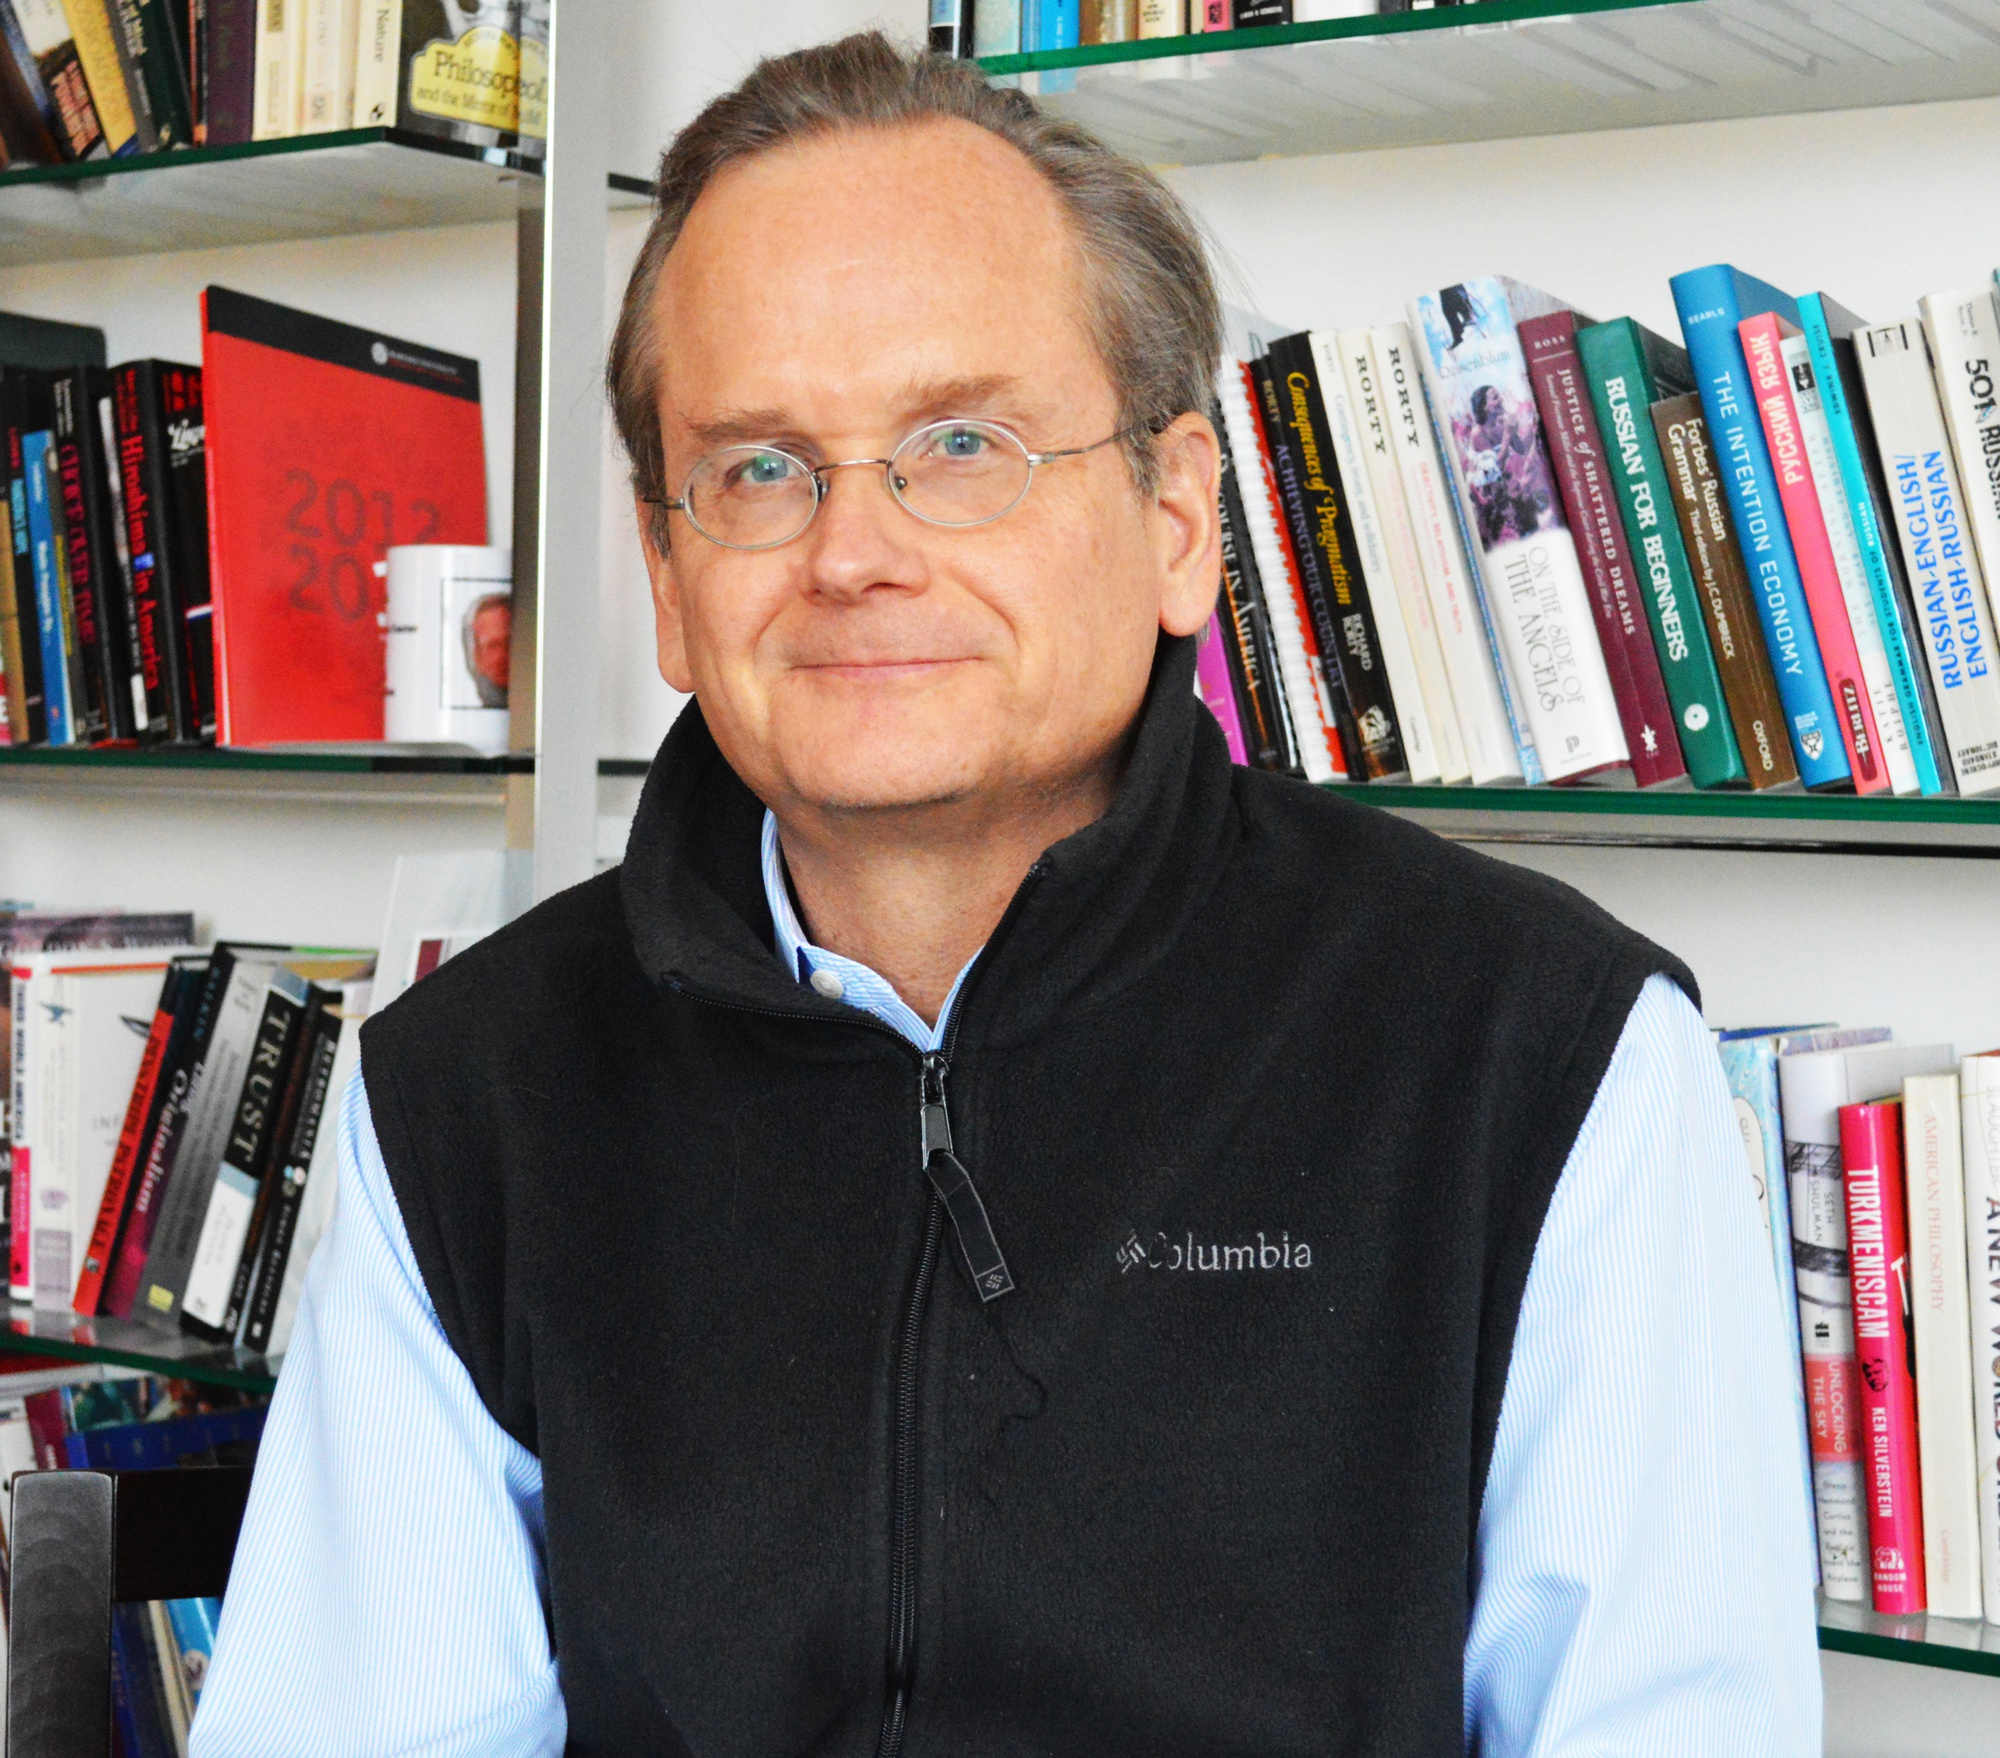 Lawrence Lessig, the Roy L. Furman Professor of Law at Harvard Law School, and Director of the Edmond J. Safra Center for Ethics, is not your average academic. He's personally engaged in seeing that his recommendations become policy, even starting Mayday PAC, devoted to supporting political candidates in favor of campaign finance reform.